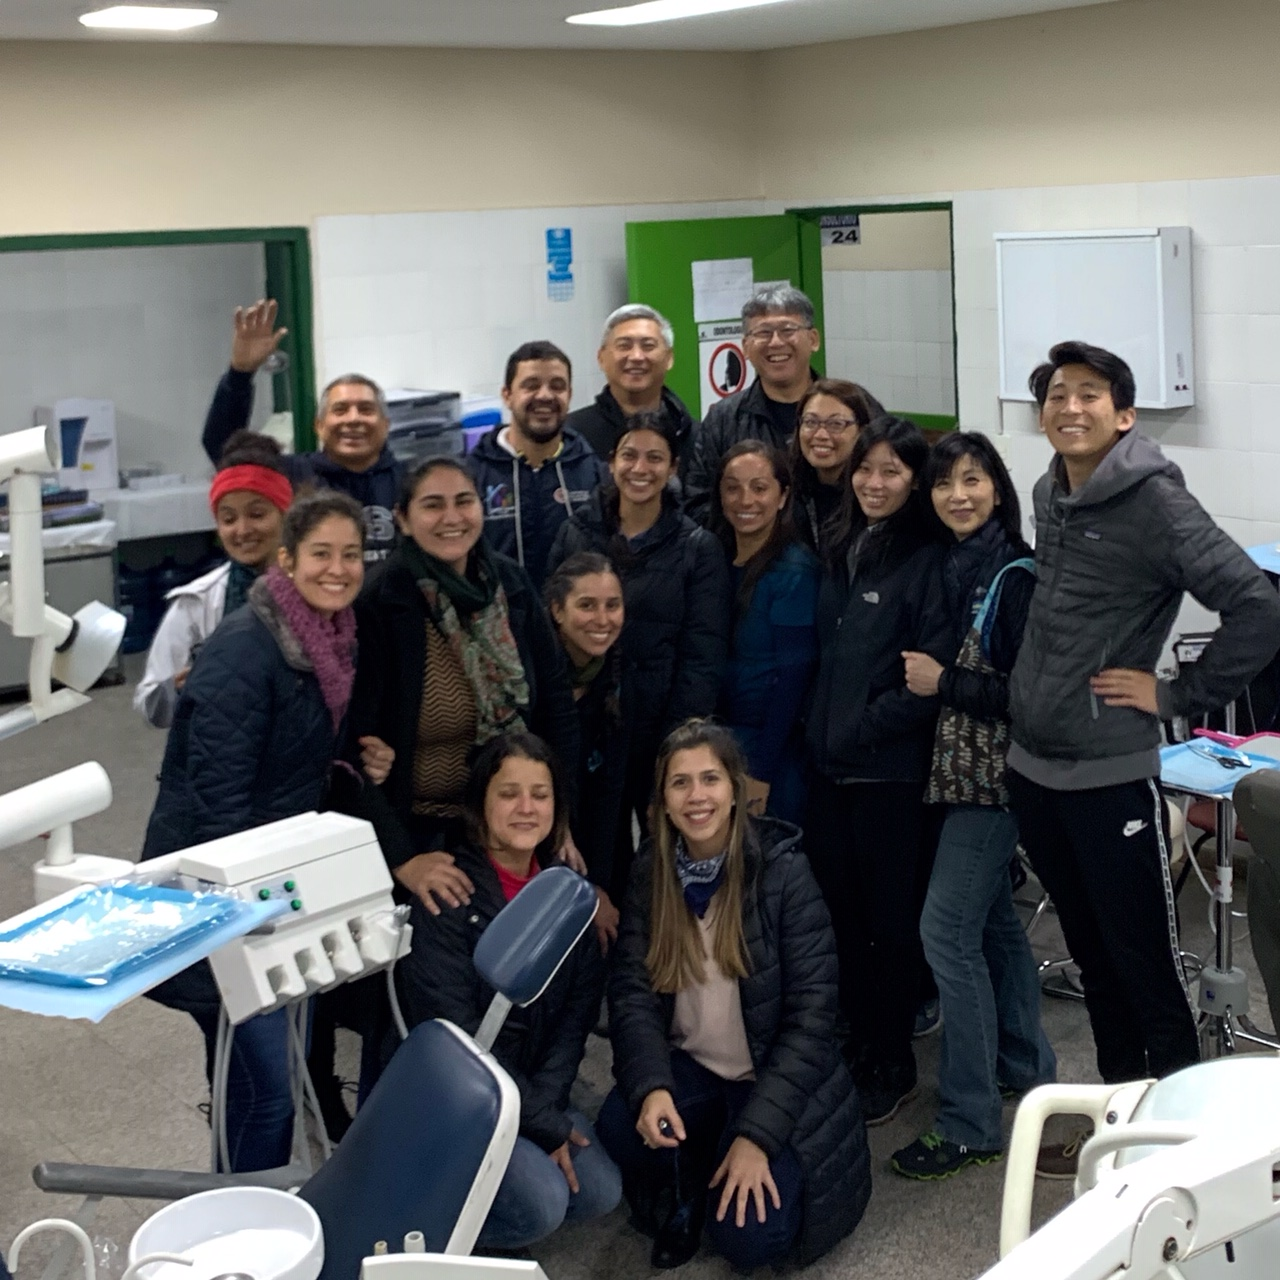 Our team just arrived at the hospital dental clinic and meeting some of the Paraguayan dental team